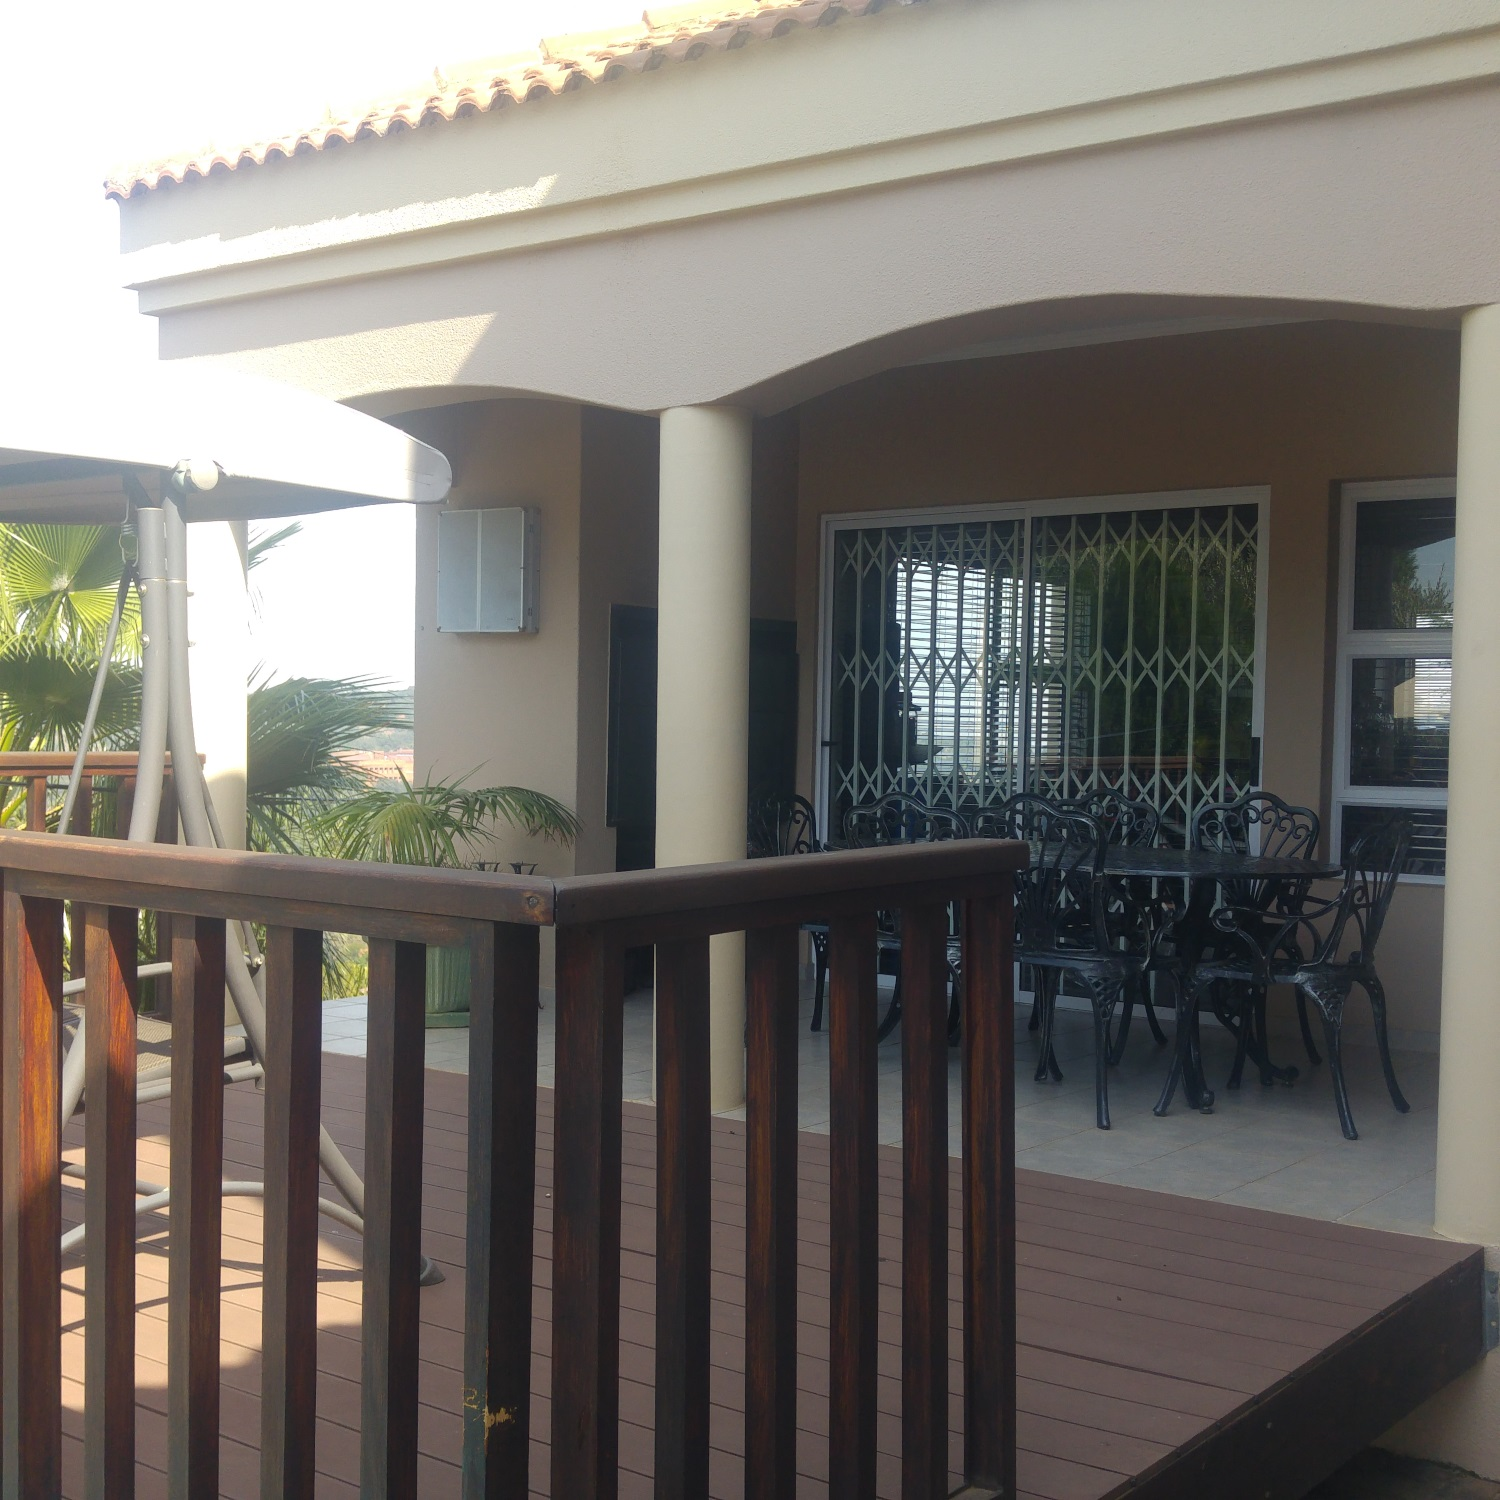 4 Bedroom Townhouse for sale in Glenvista Ext 6 ENT0001967 : photo#22